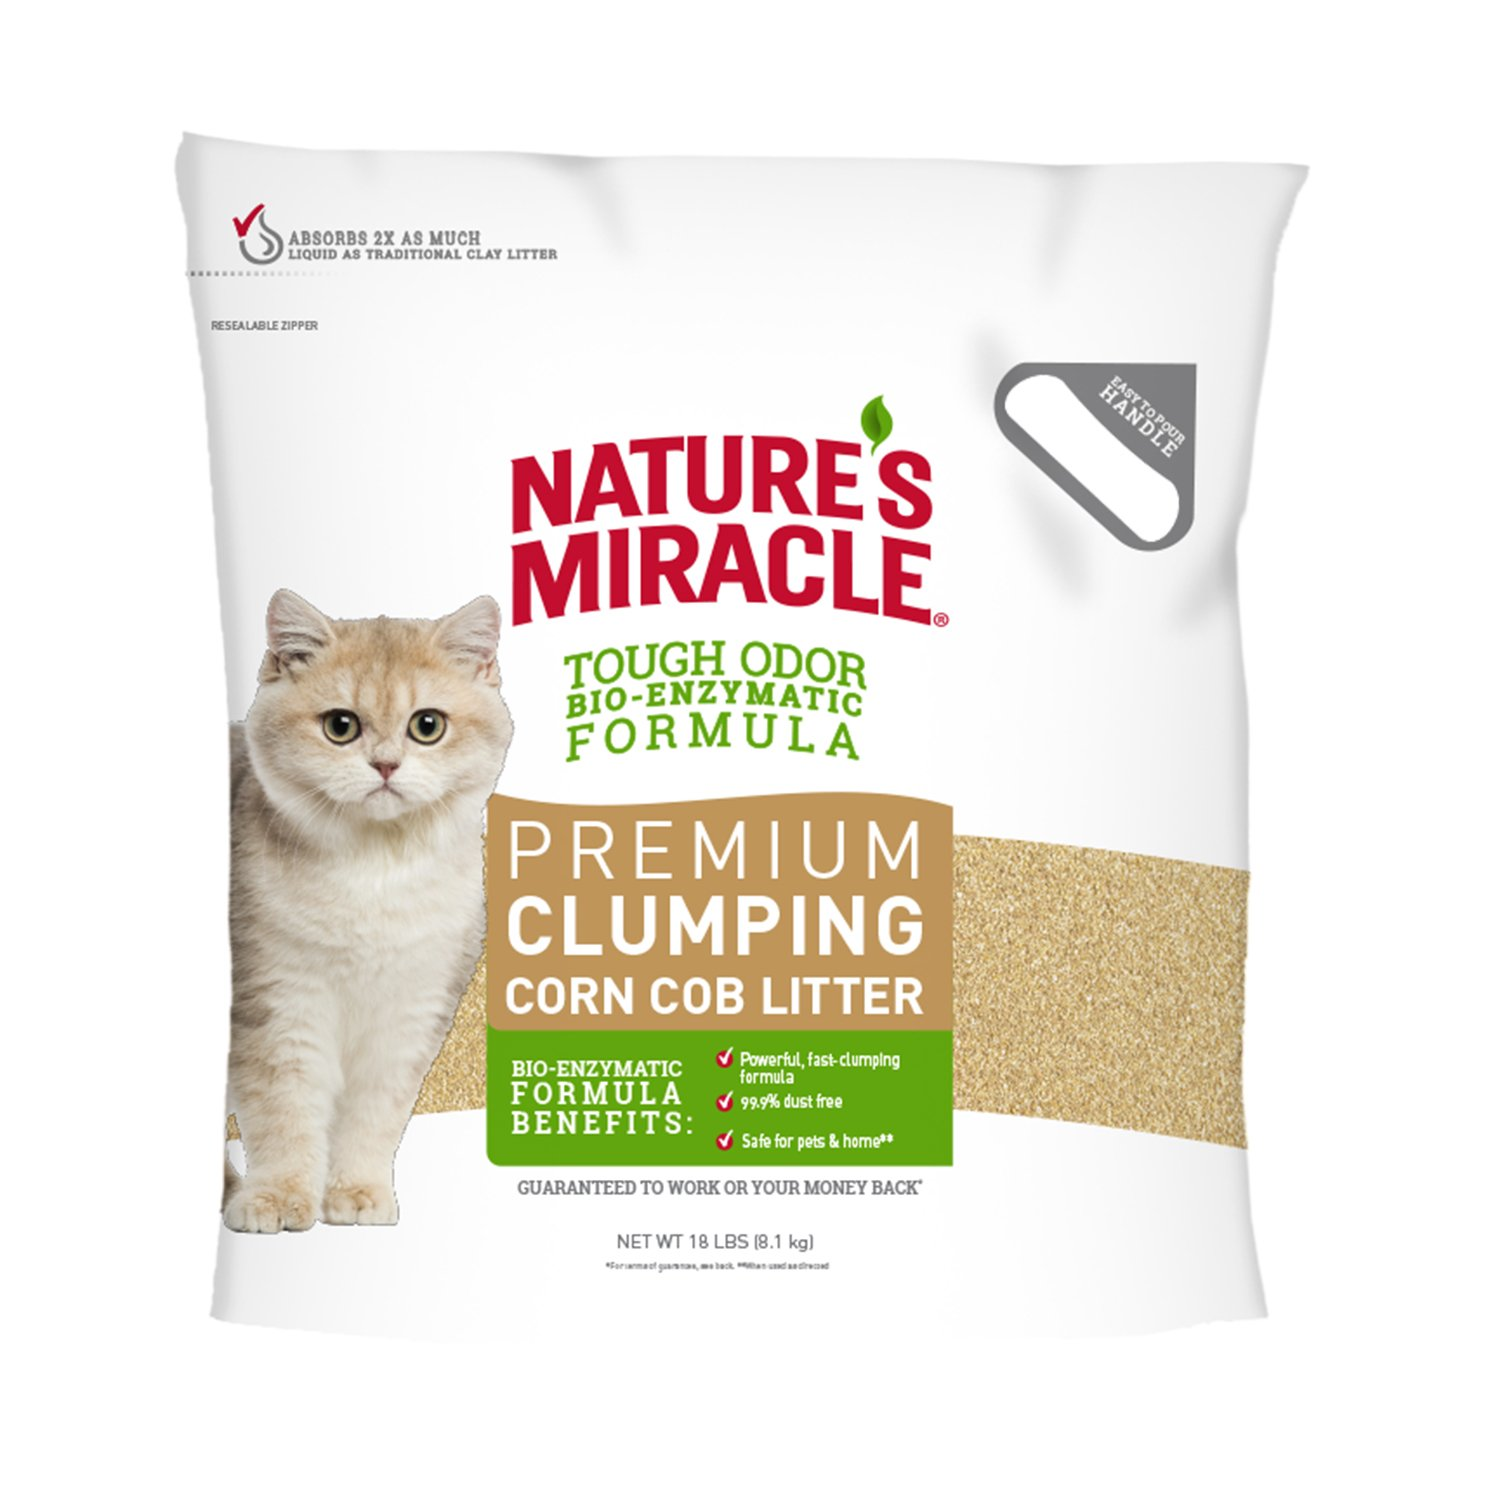 Nature's Miracle Premium Clumping Corn Cob Litter, 18 lb